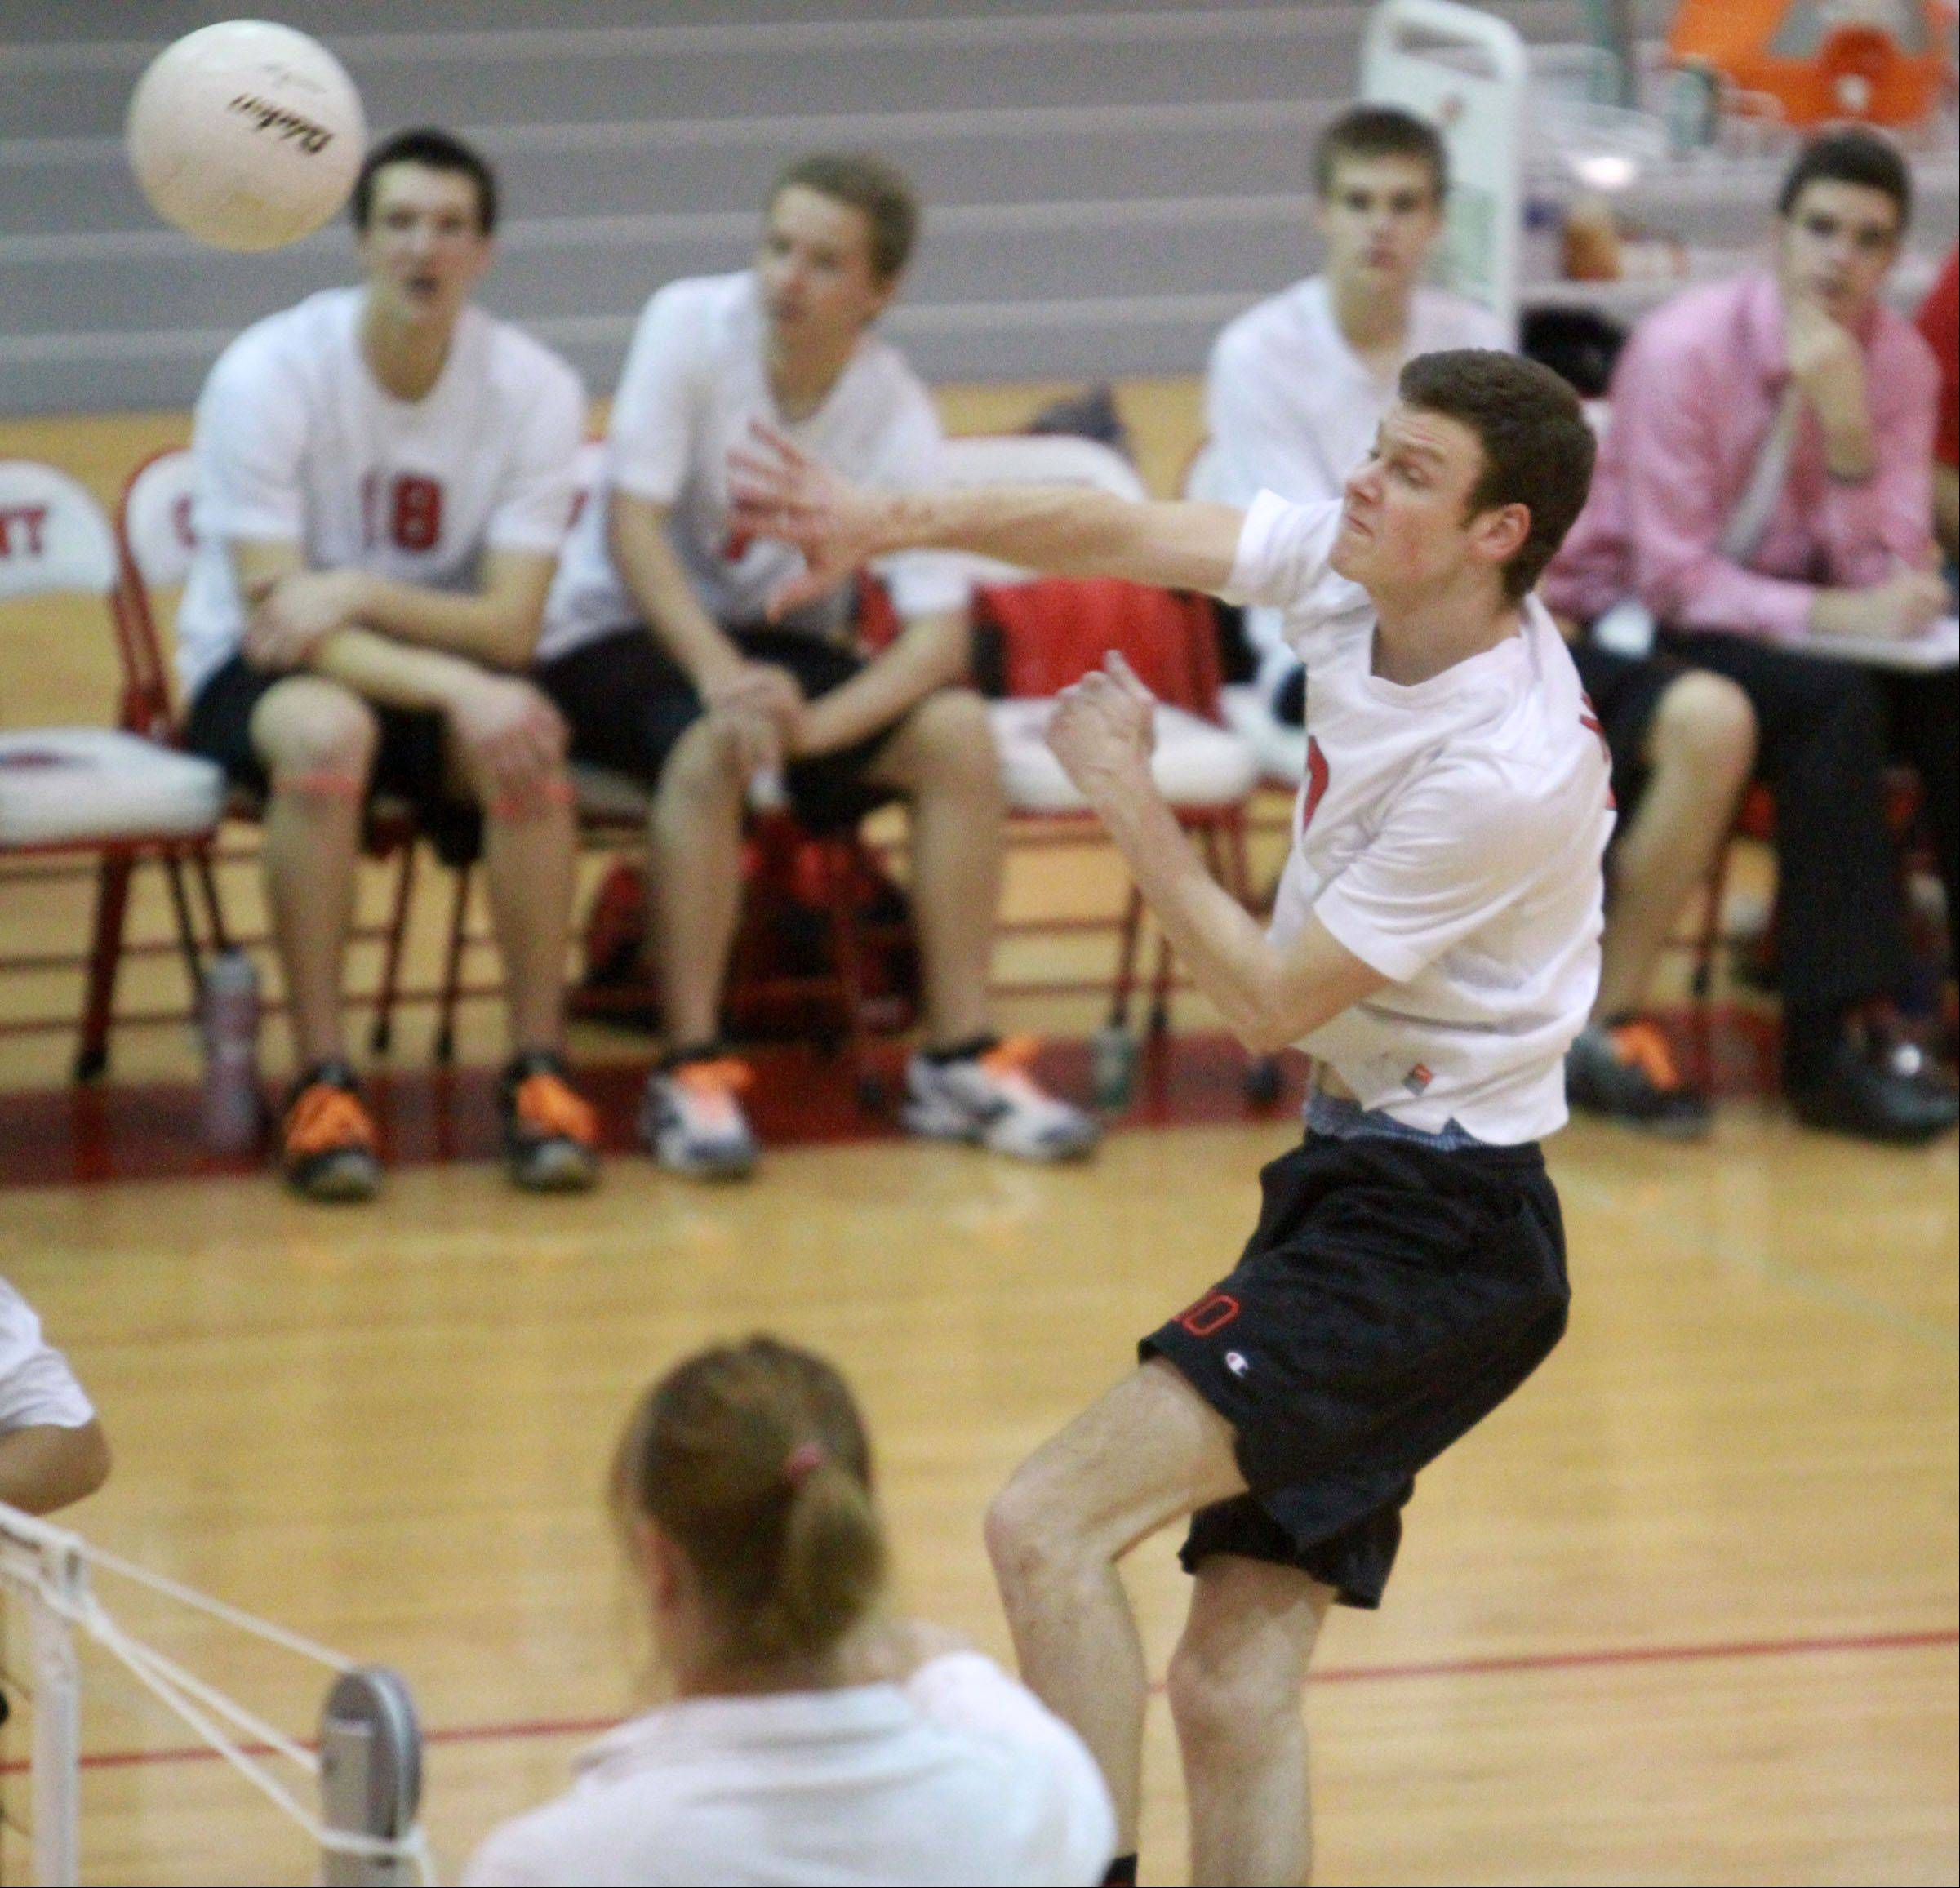 Mundelein's Blake Burton spikes the ball against Grant on Friday.